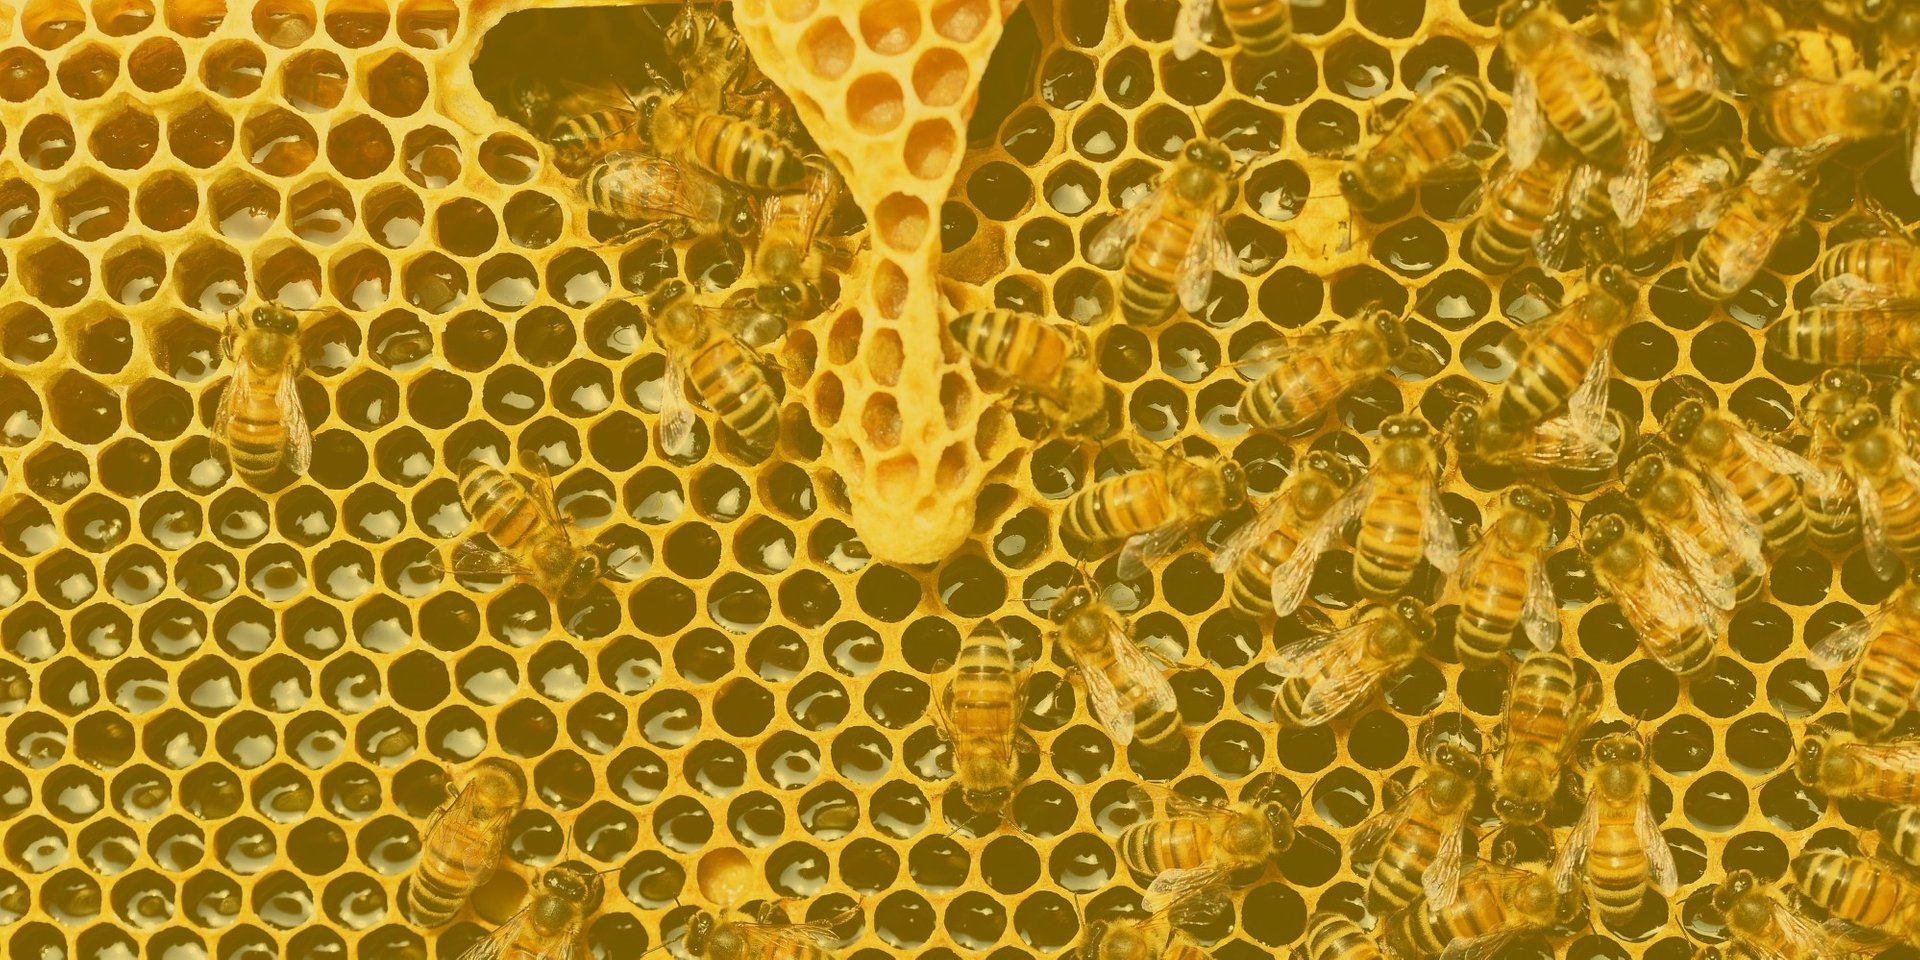 Private Client Groups - the bee's knees in the world of IT security